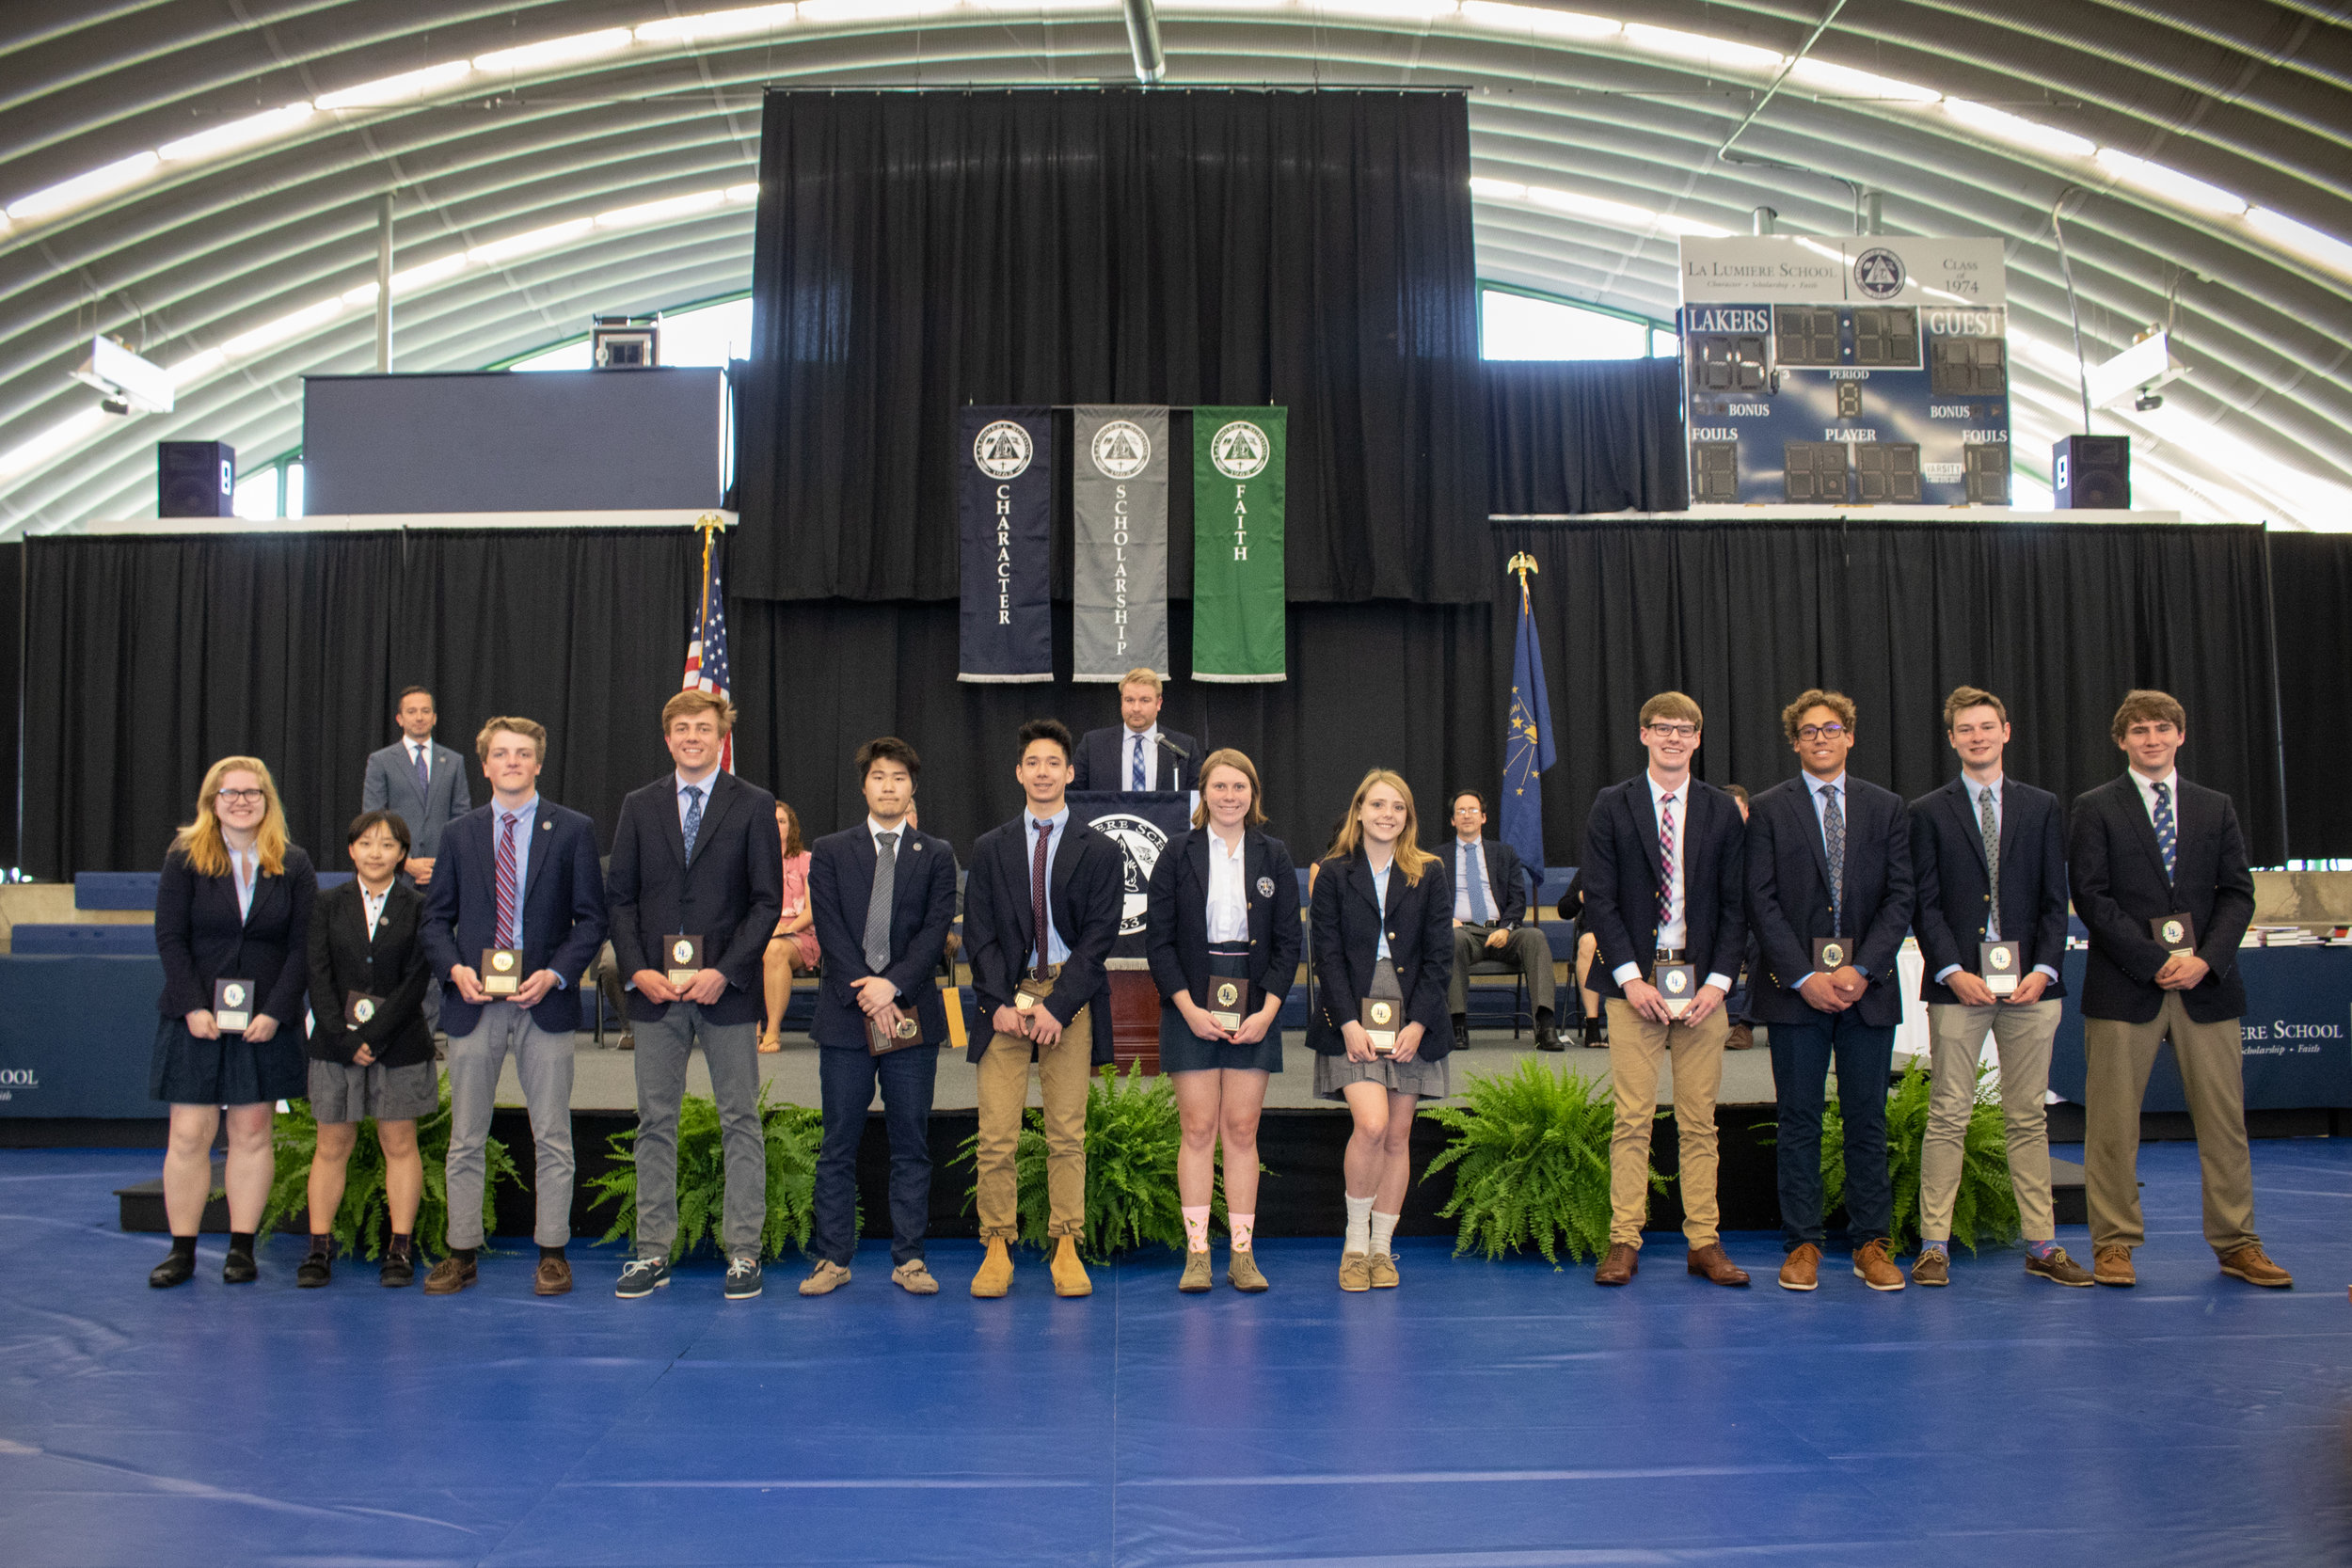 Excellence in Performance and Laker Award winners for the spring season in athletics